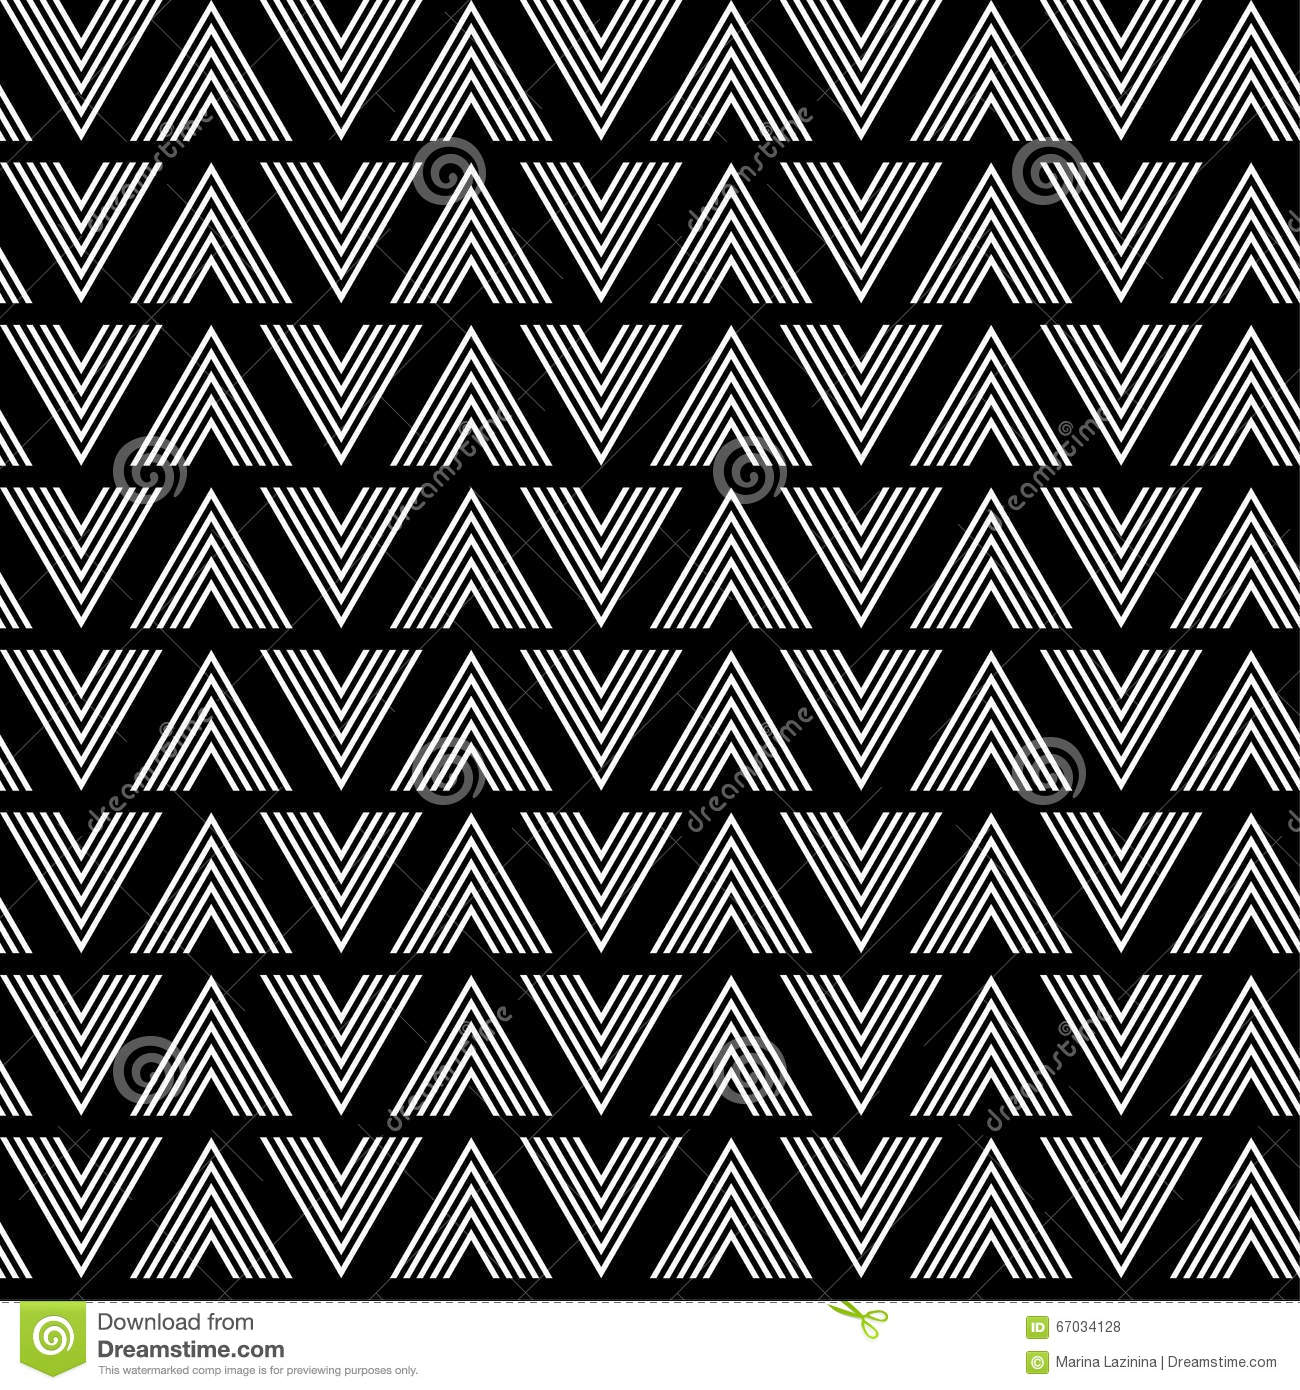 Seamless Black And White Background With Abstract Geometric Shapes ... for Geometric Shapes Design Black And White  lp0lpmzq